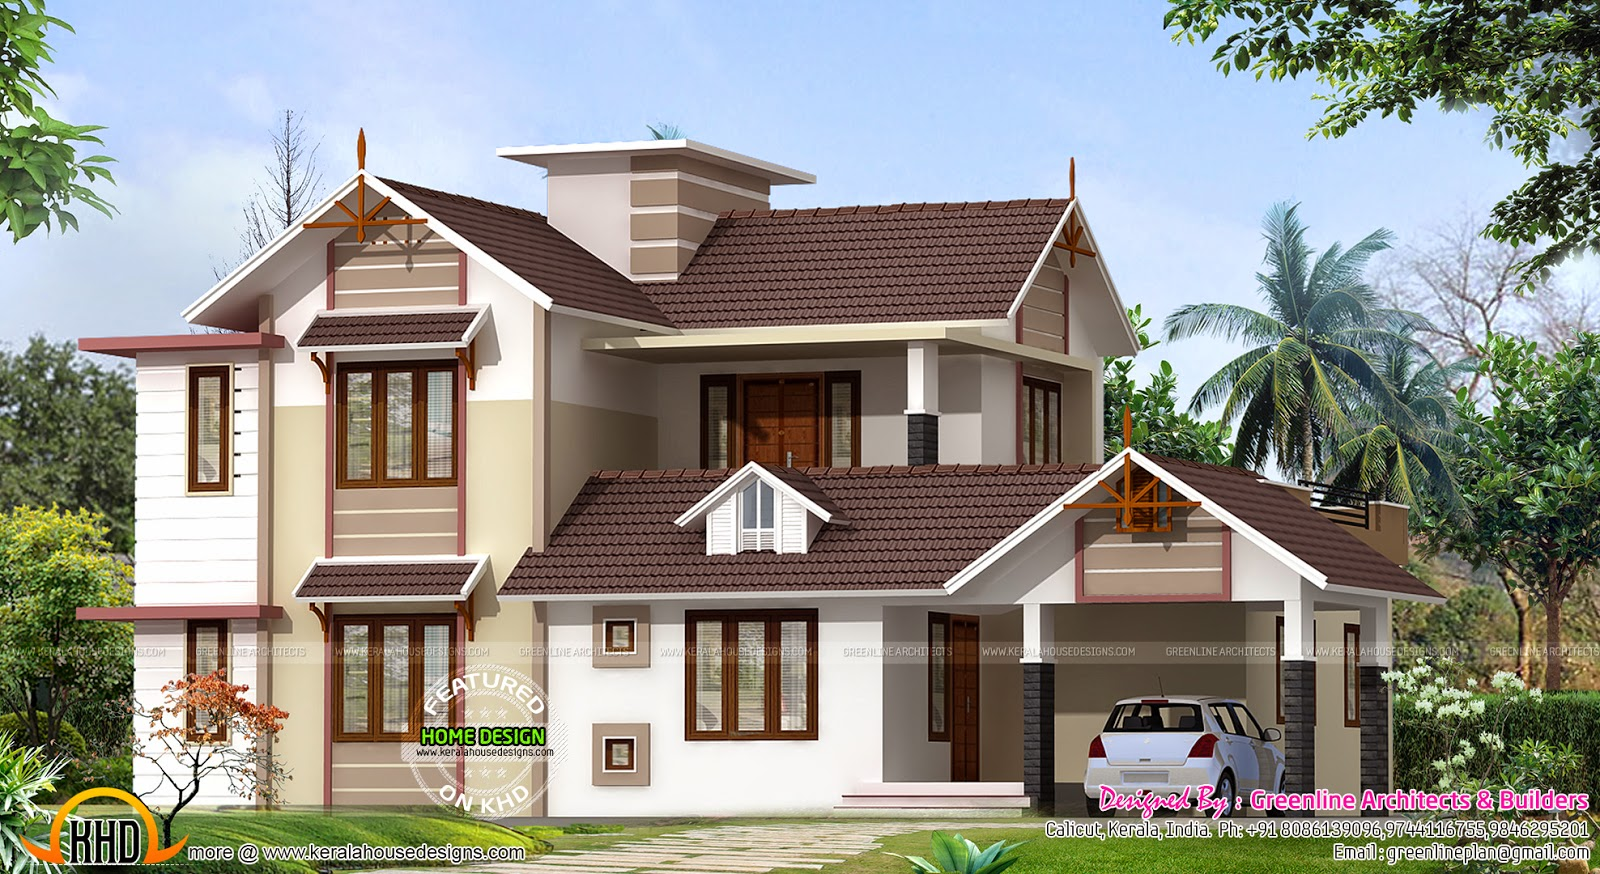 2400 sq ft new house design kerala home design and floor for New house blueprints